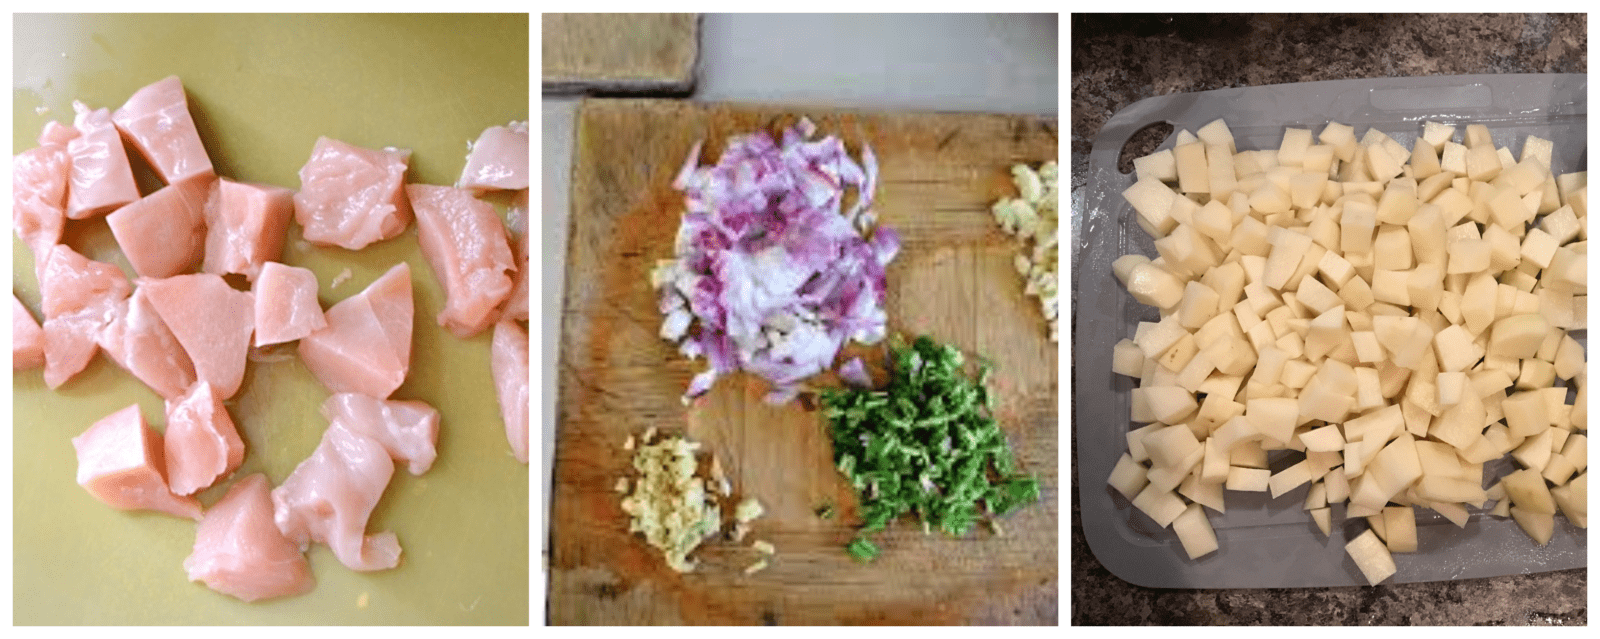 cleaning and chopping vegetables and chicken